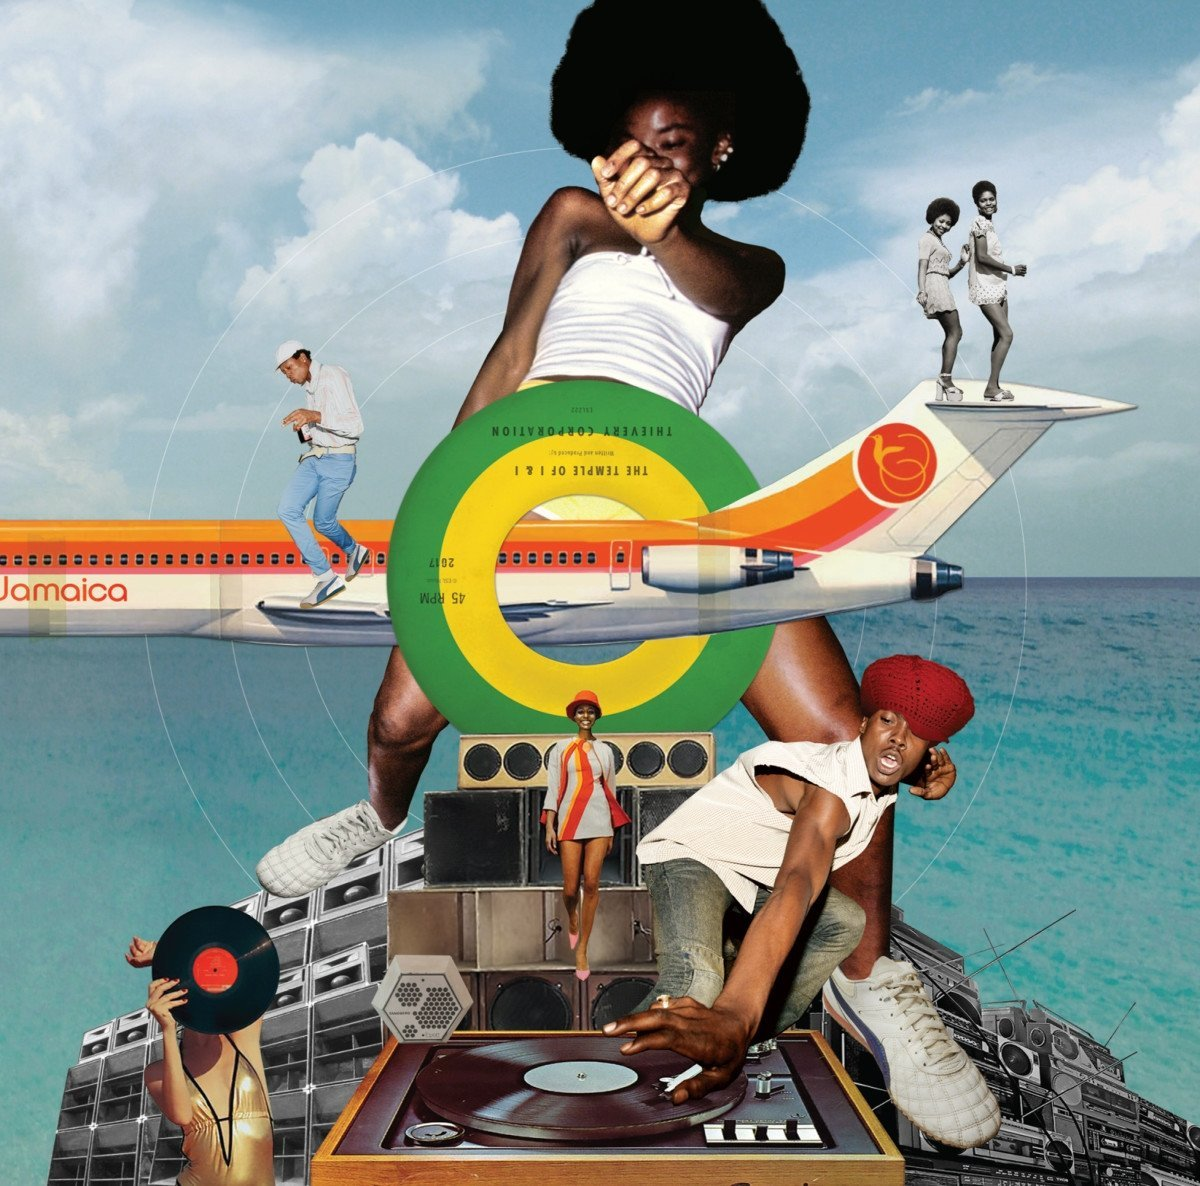 thievery corporation album Thievery Corporation and Mr. Lif reflect on greeds ugliness on new song Ghetto Matrix    listen